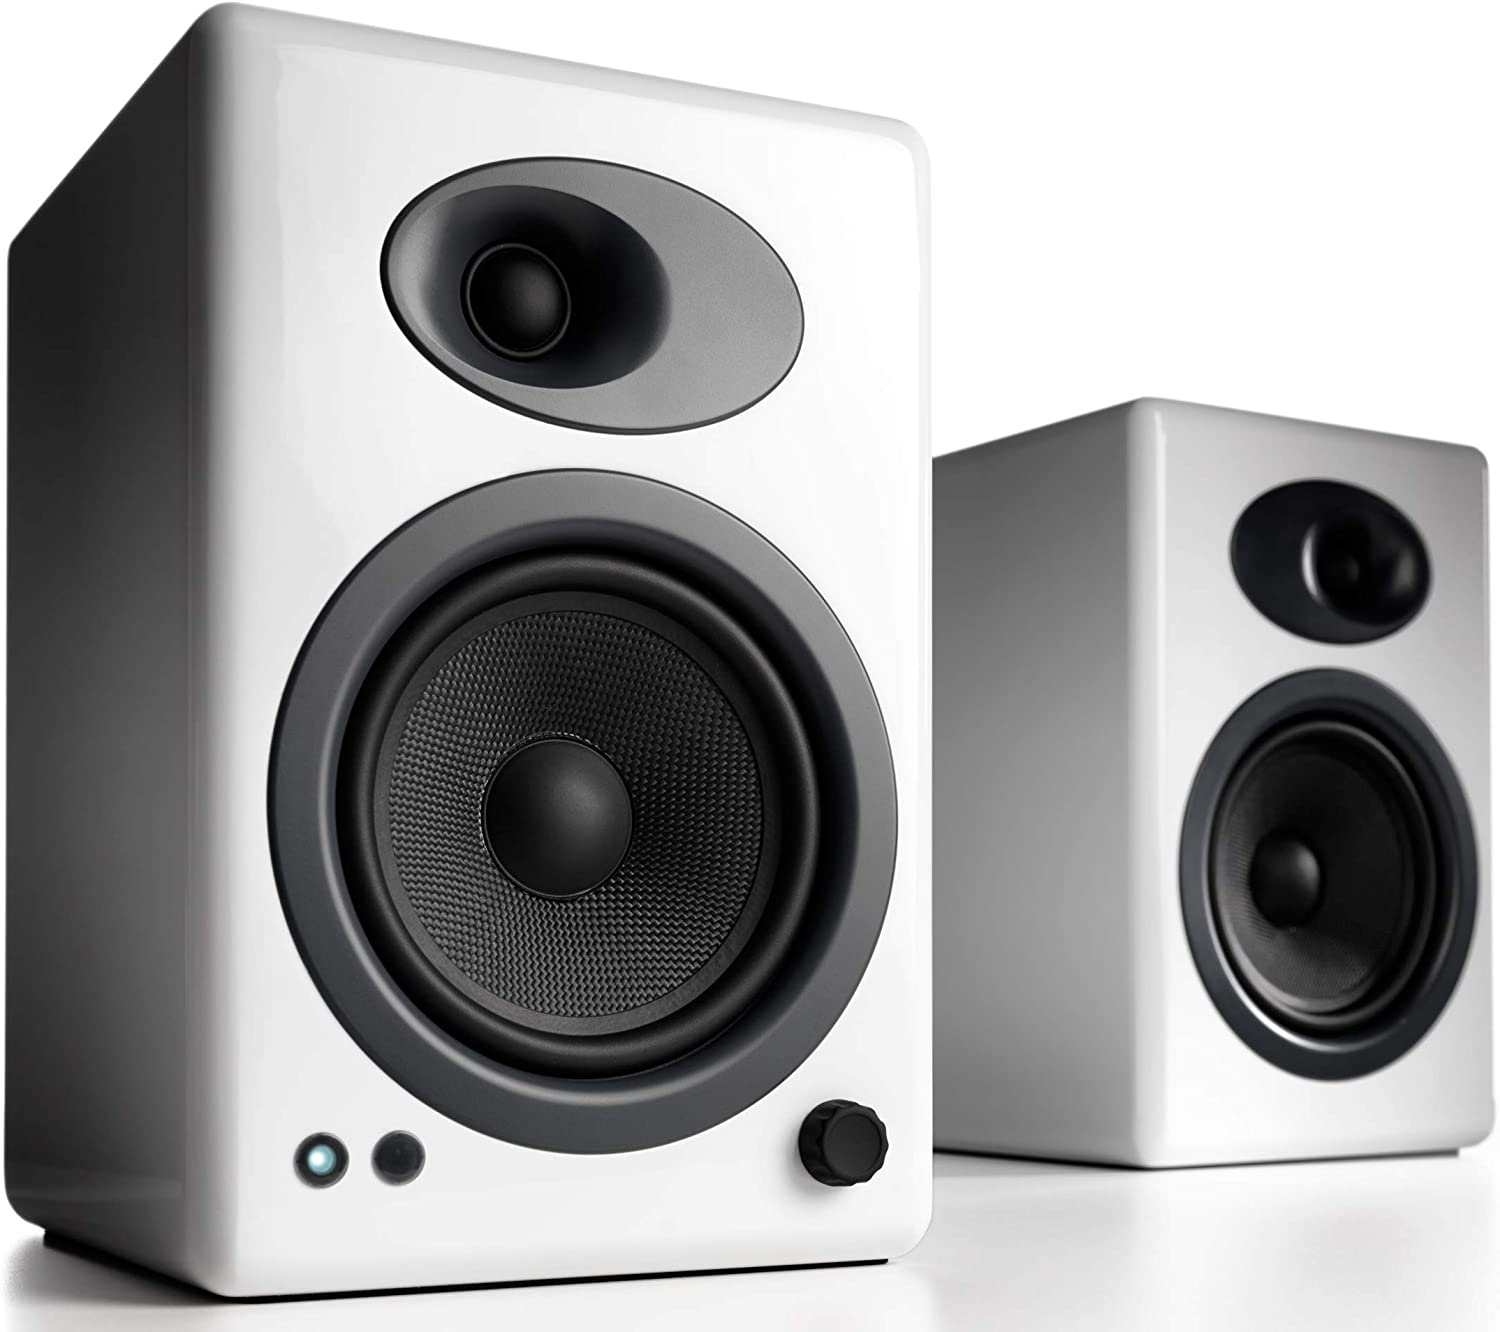 Audioengine A5 Plus Classic 150W Powered Bookshelf Speakers with Remote Control, Built-in Analog Amplifier (White)